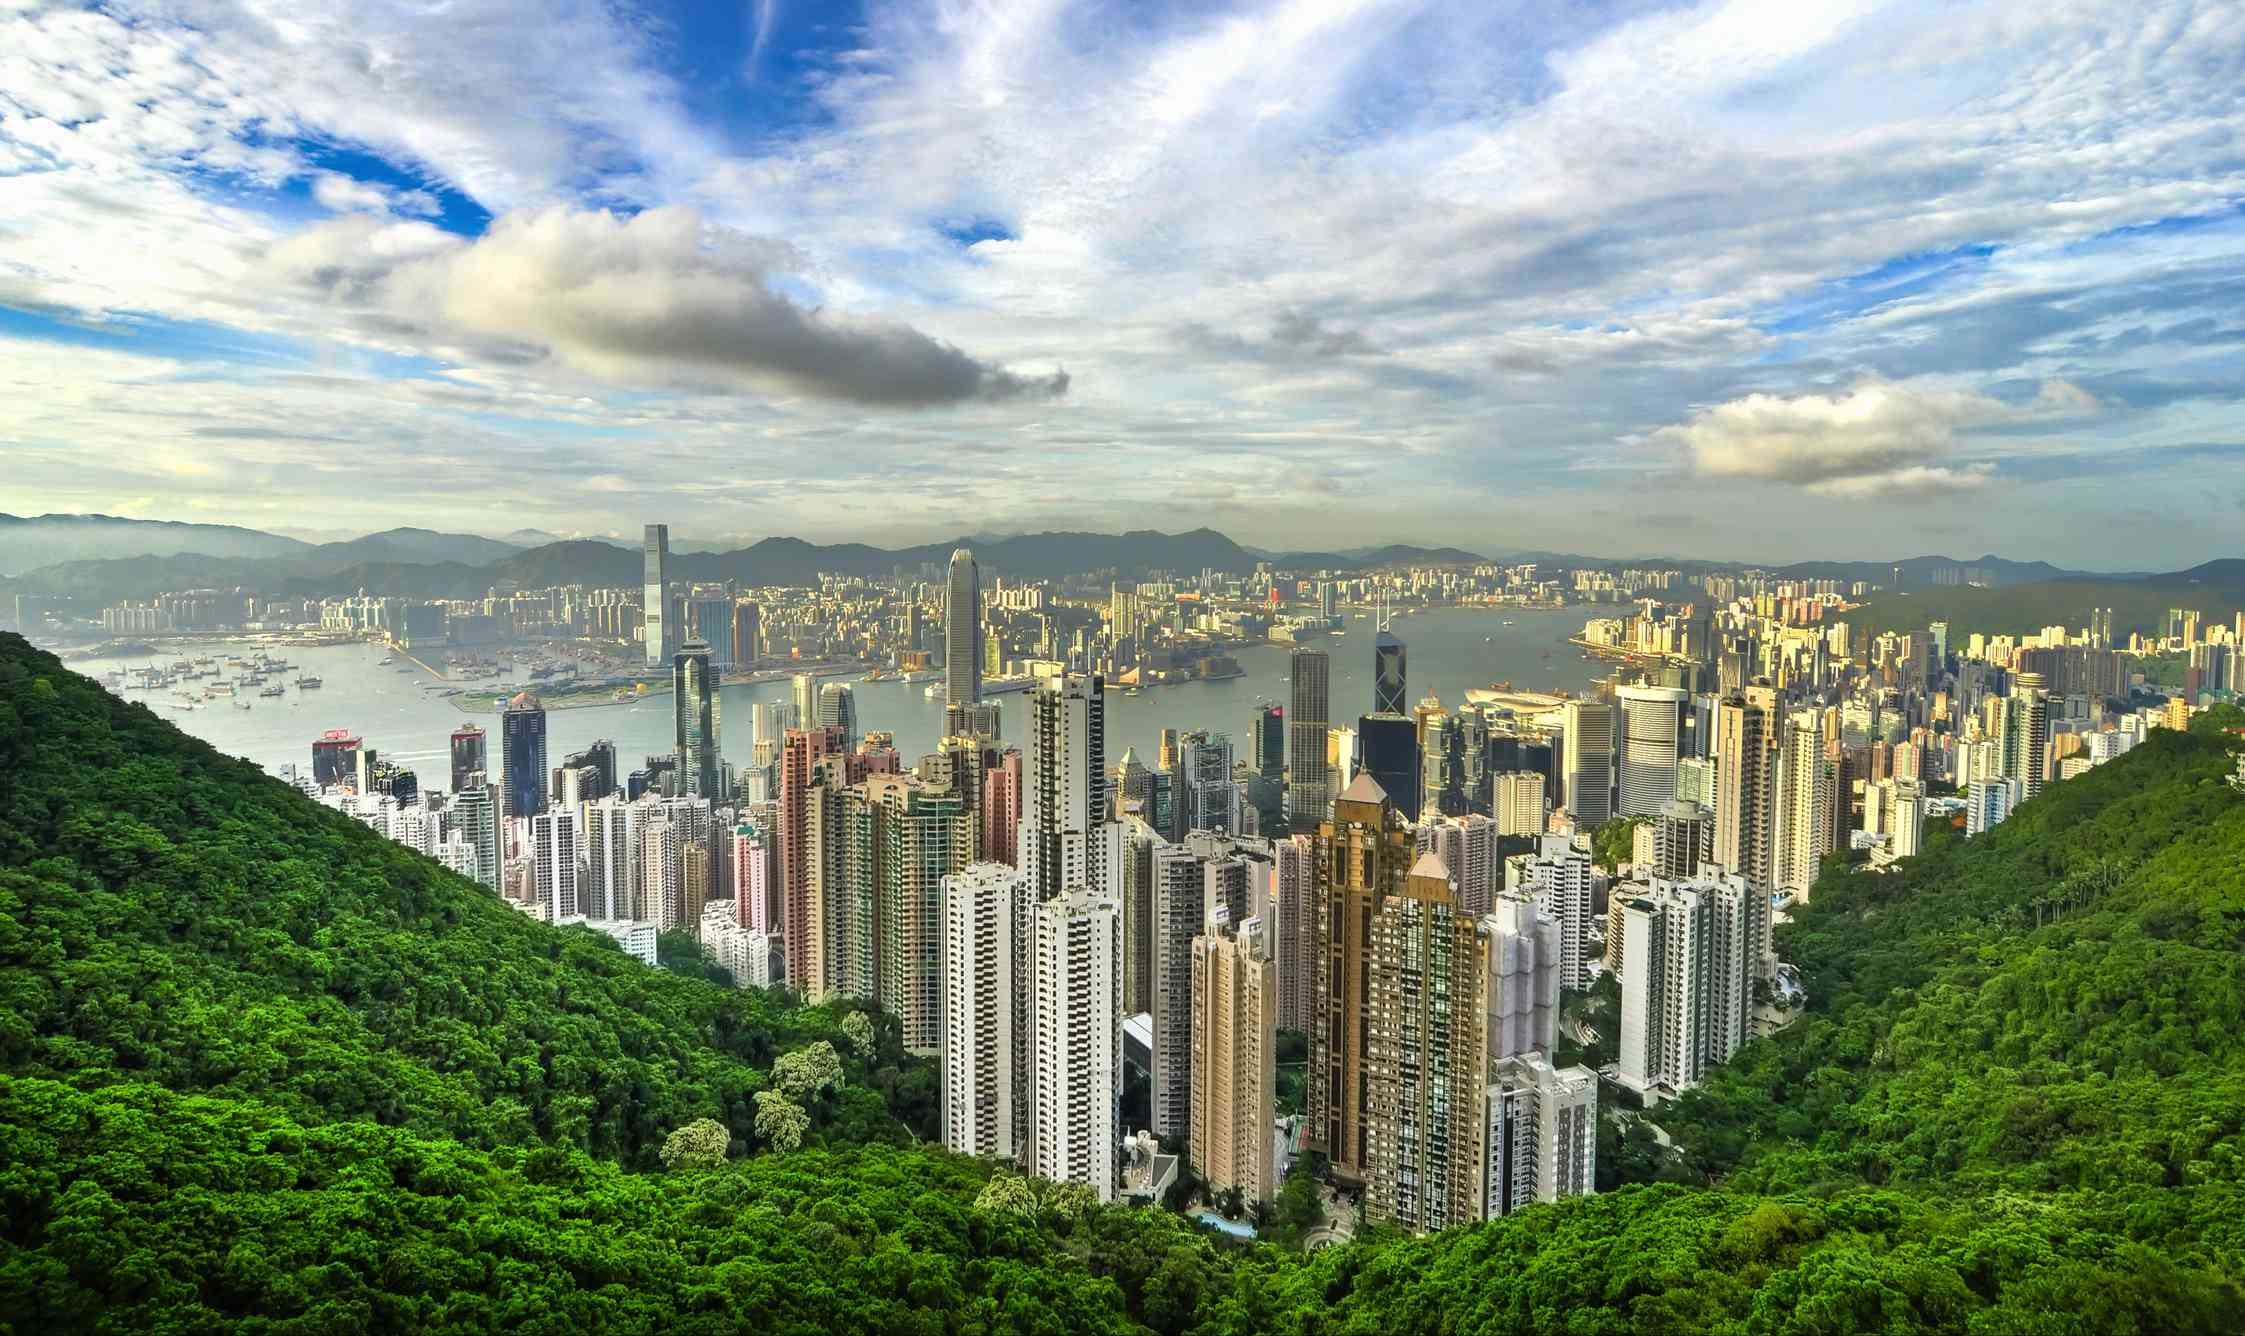 View from the lush green mountain, Victoria Peak, looking down at the highrises of city of Hong Kong with a bright blue sky filled with white clouds above